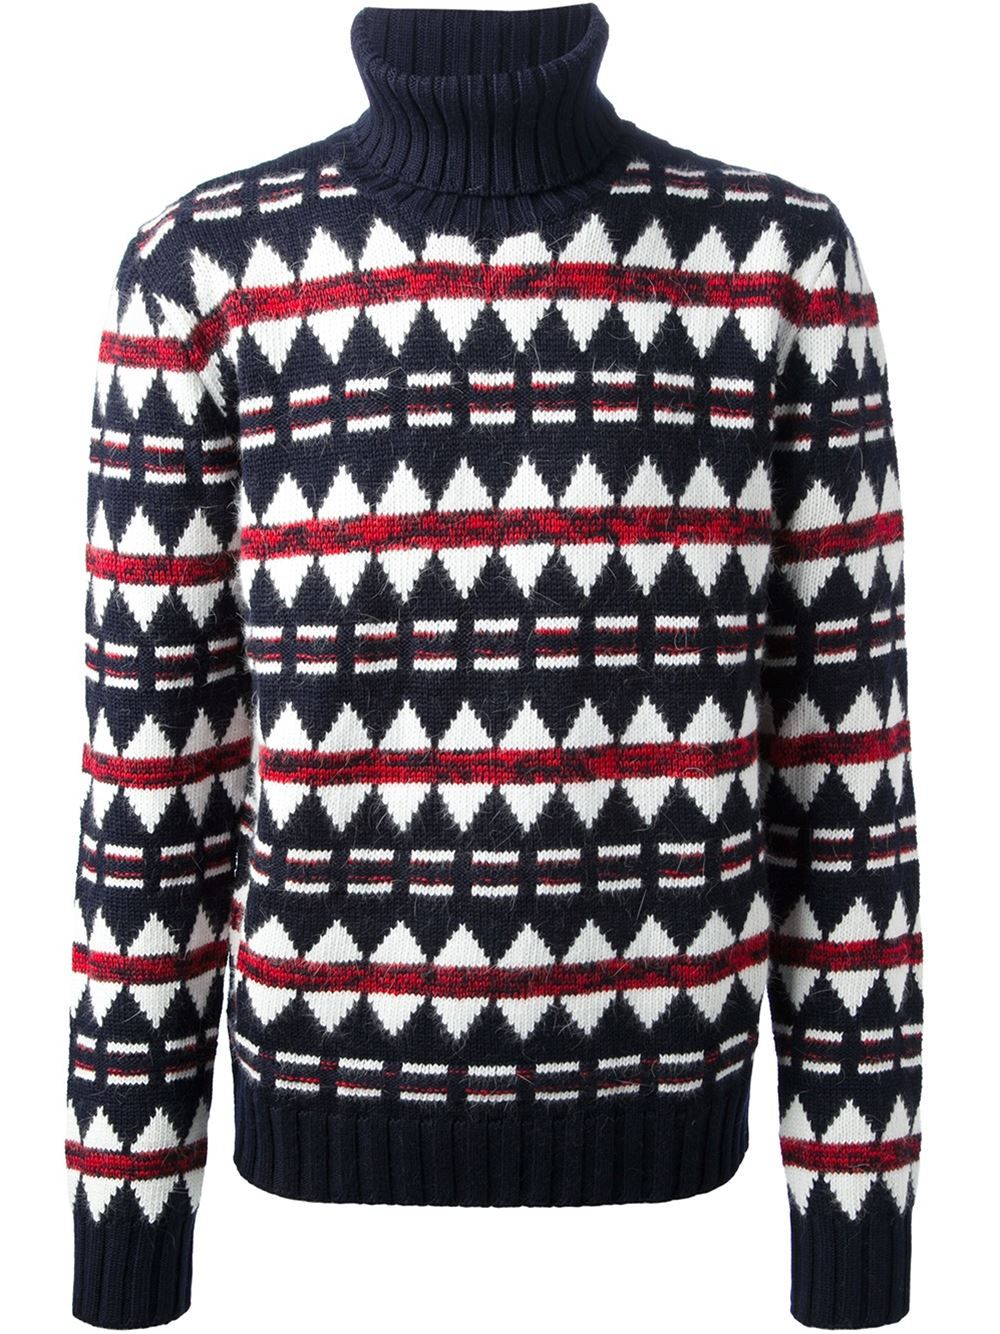 c22b645e3b8b Dsquared2 Patterned Roll Neck Sweater - Elite - Farfetch.com Roll Neck  Sweater